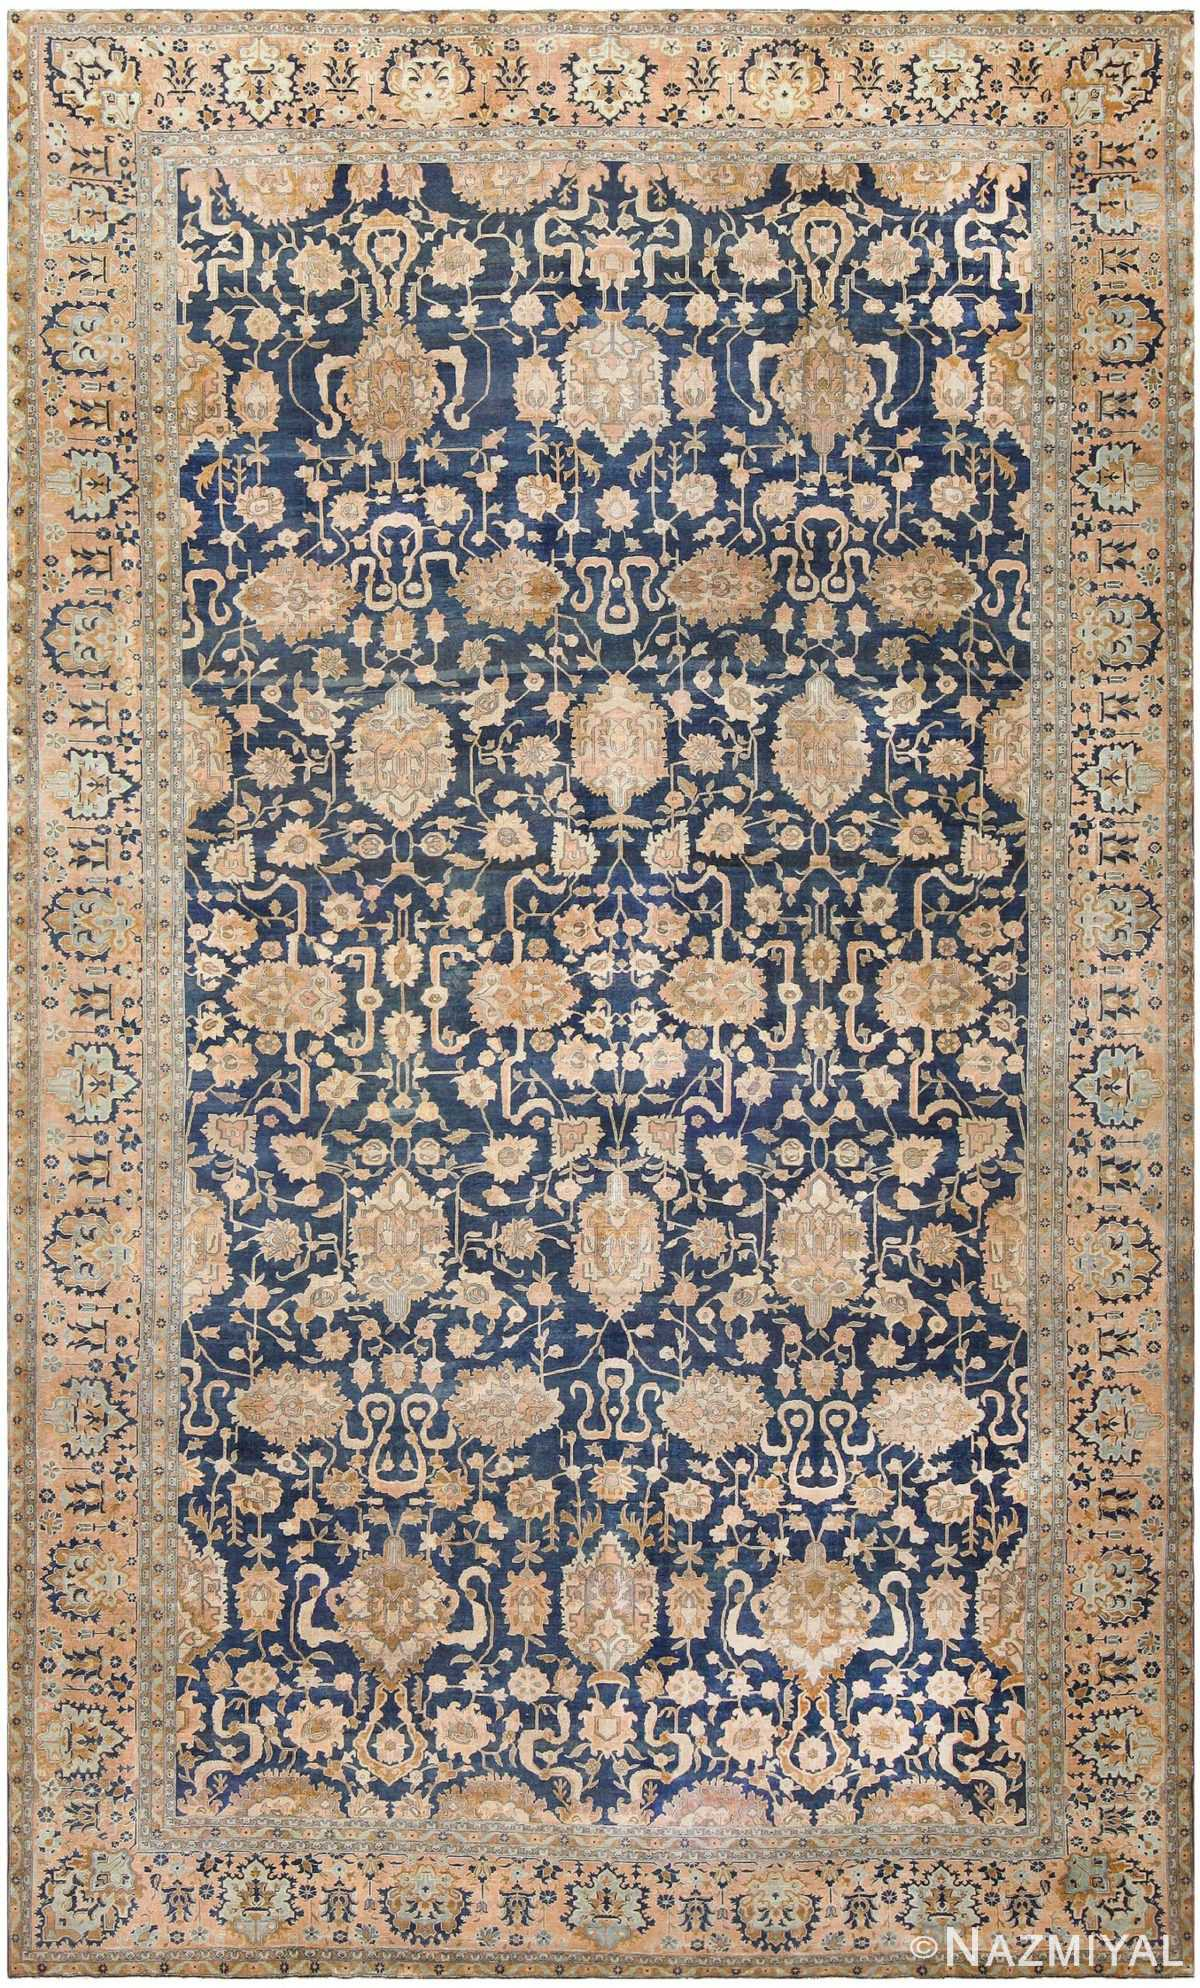 Antique Indian Floral Rug 46781 Detail/Large View